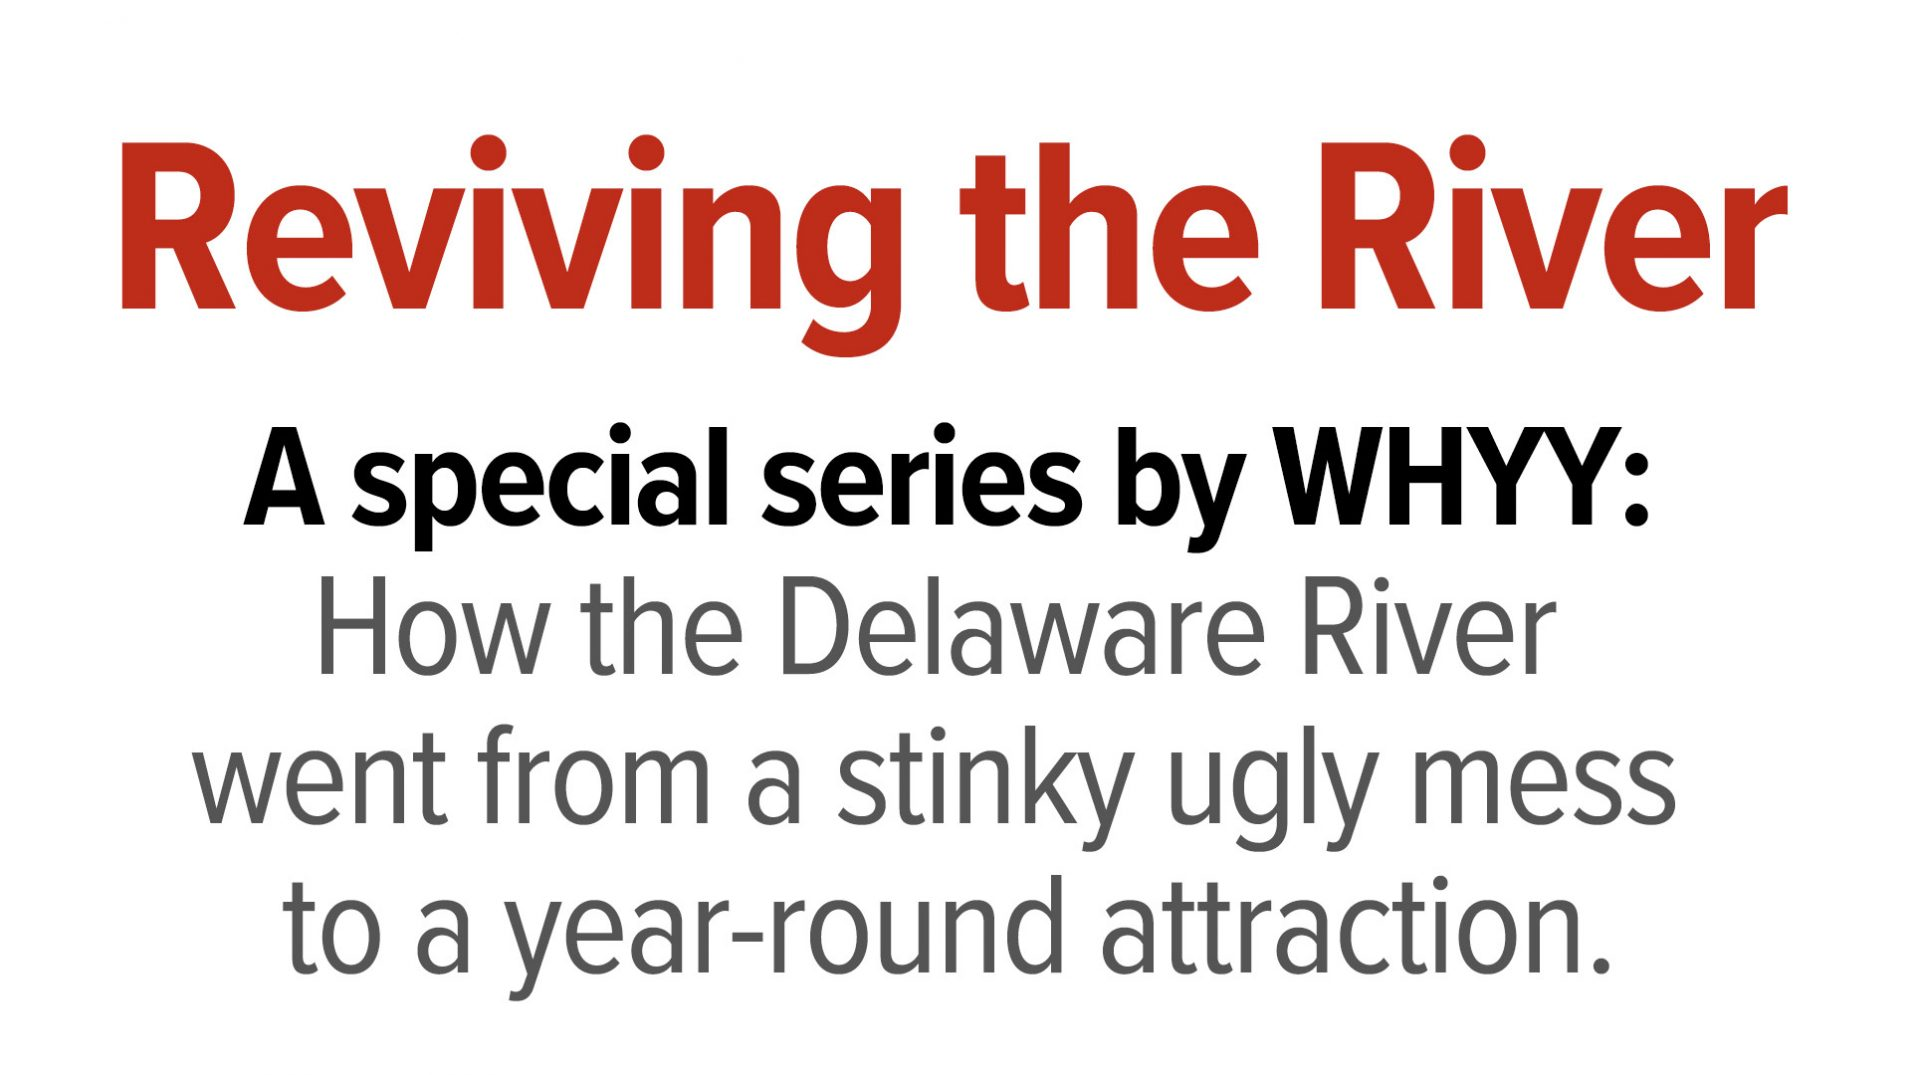 A special series by WHYY: How the Delaware River transformed from a stinky ugly mess to a year-round attraction.